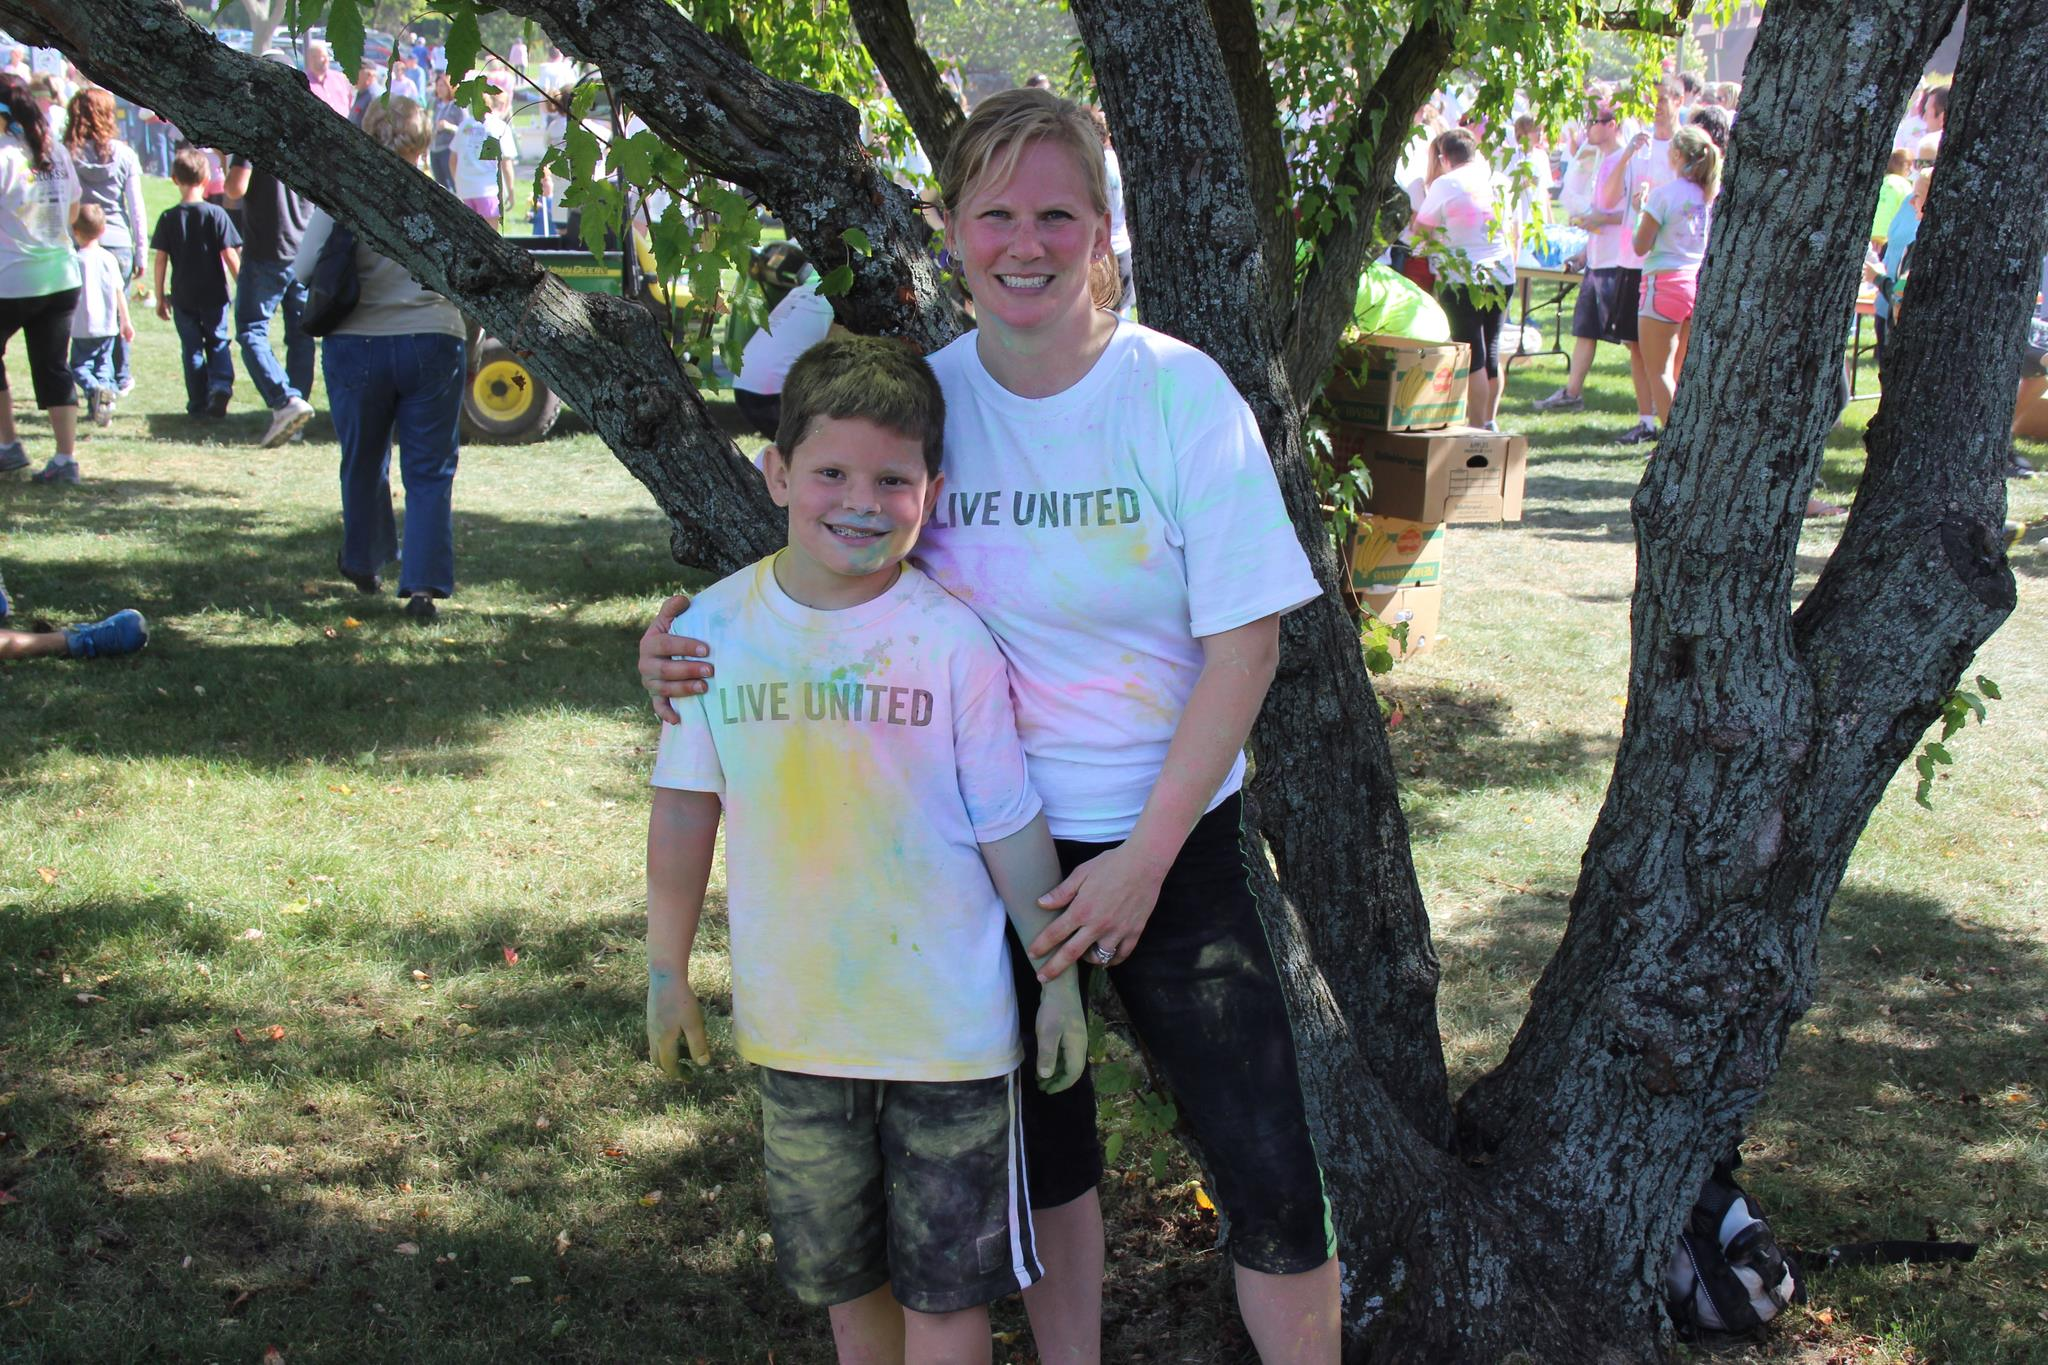 Participated in the 2013 Color Run.